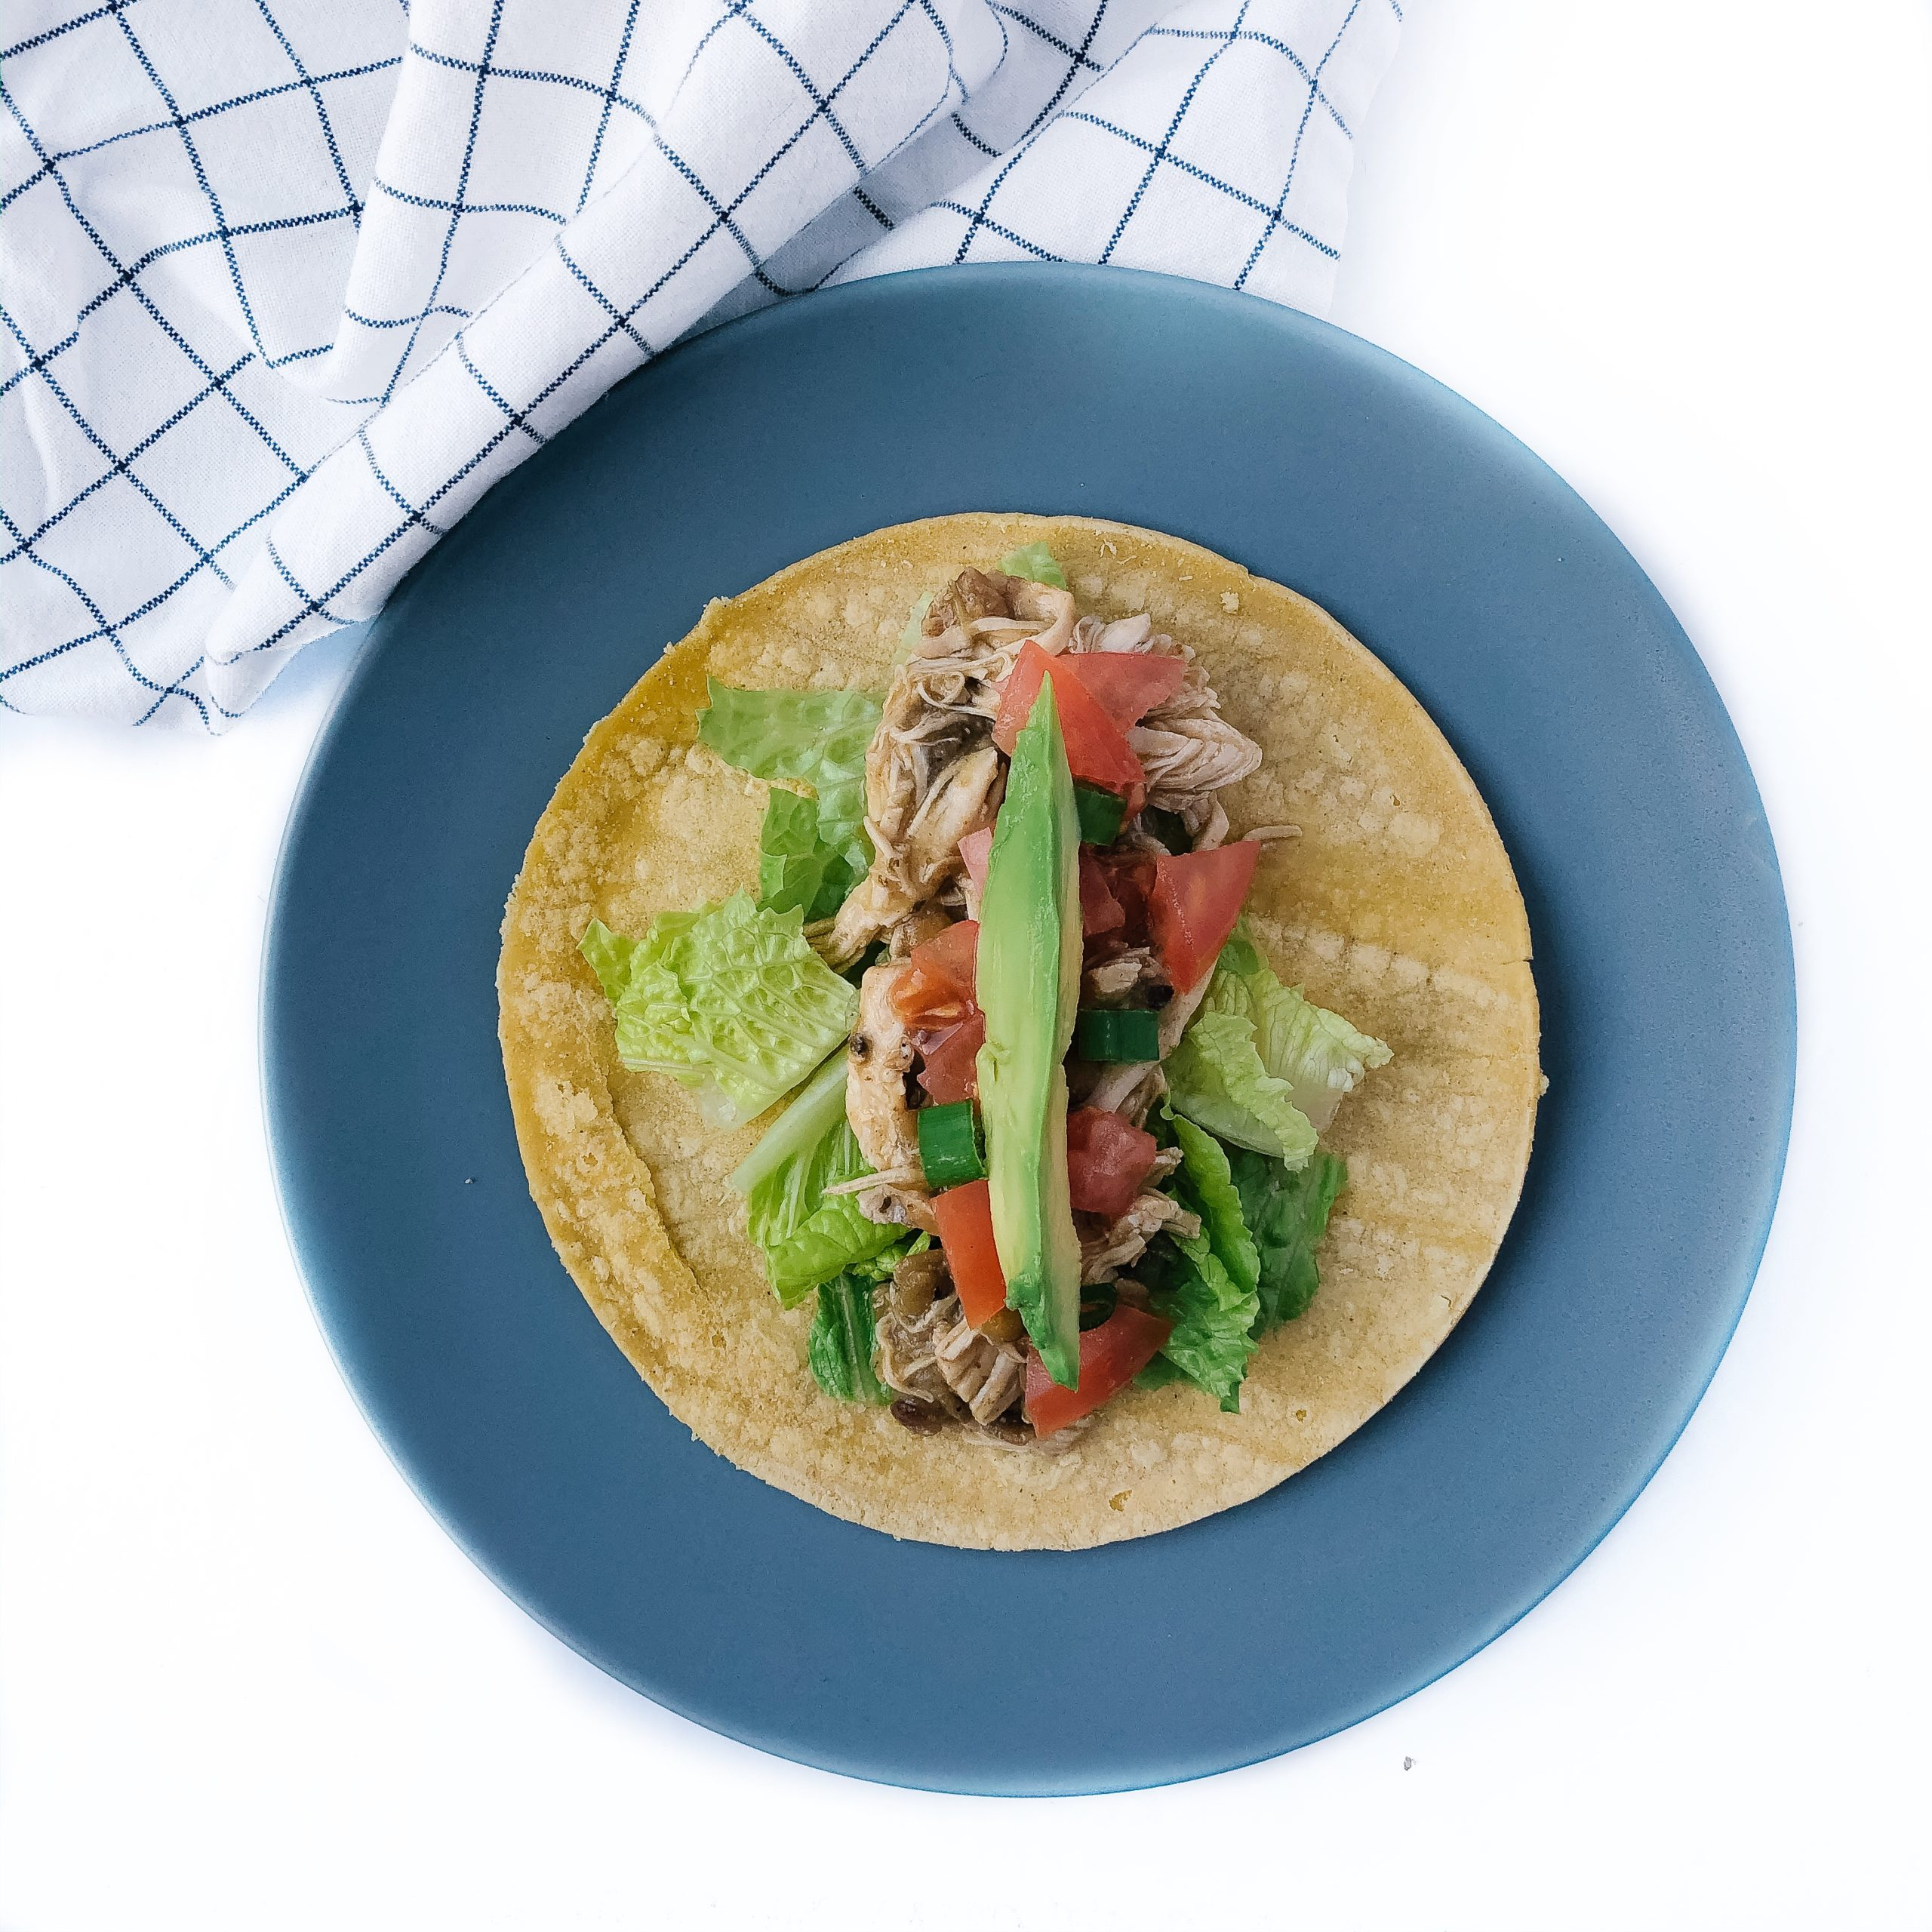 chicken and lentil tacos assembled on a blue plate with lettuce, tomato, avocado topping